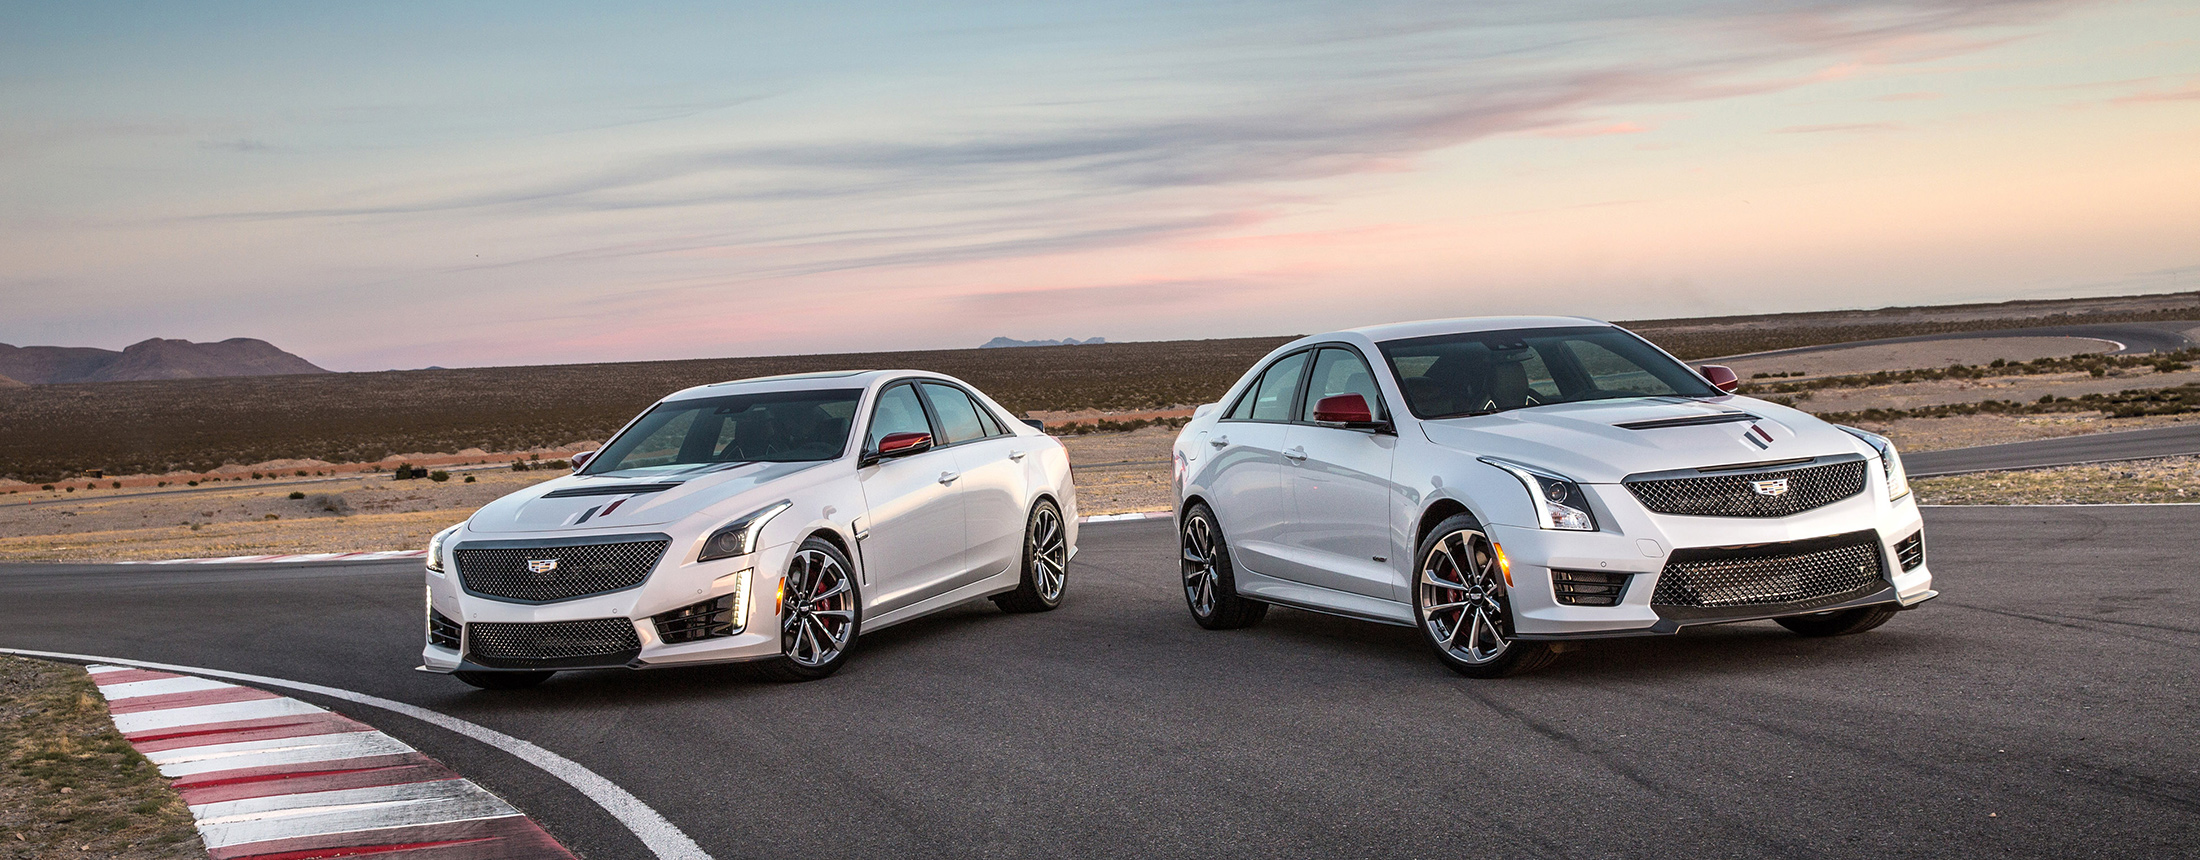 TrackWorthy - 2018 Cadillac ATS-V and CTS-V Championship Editions (1)